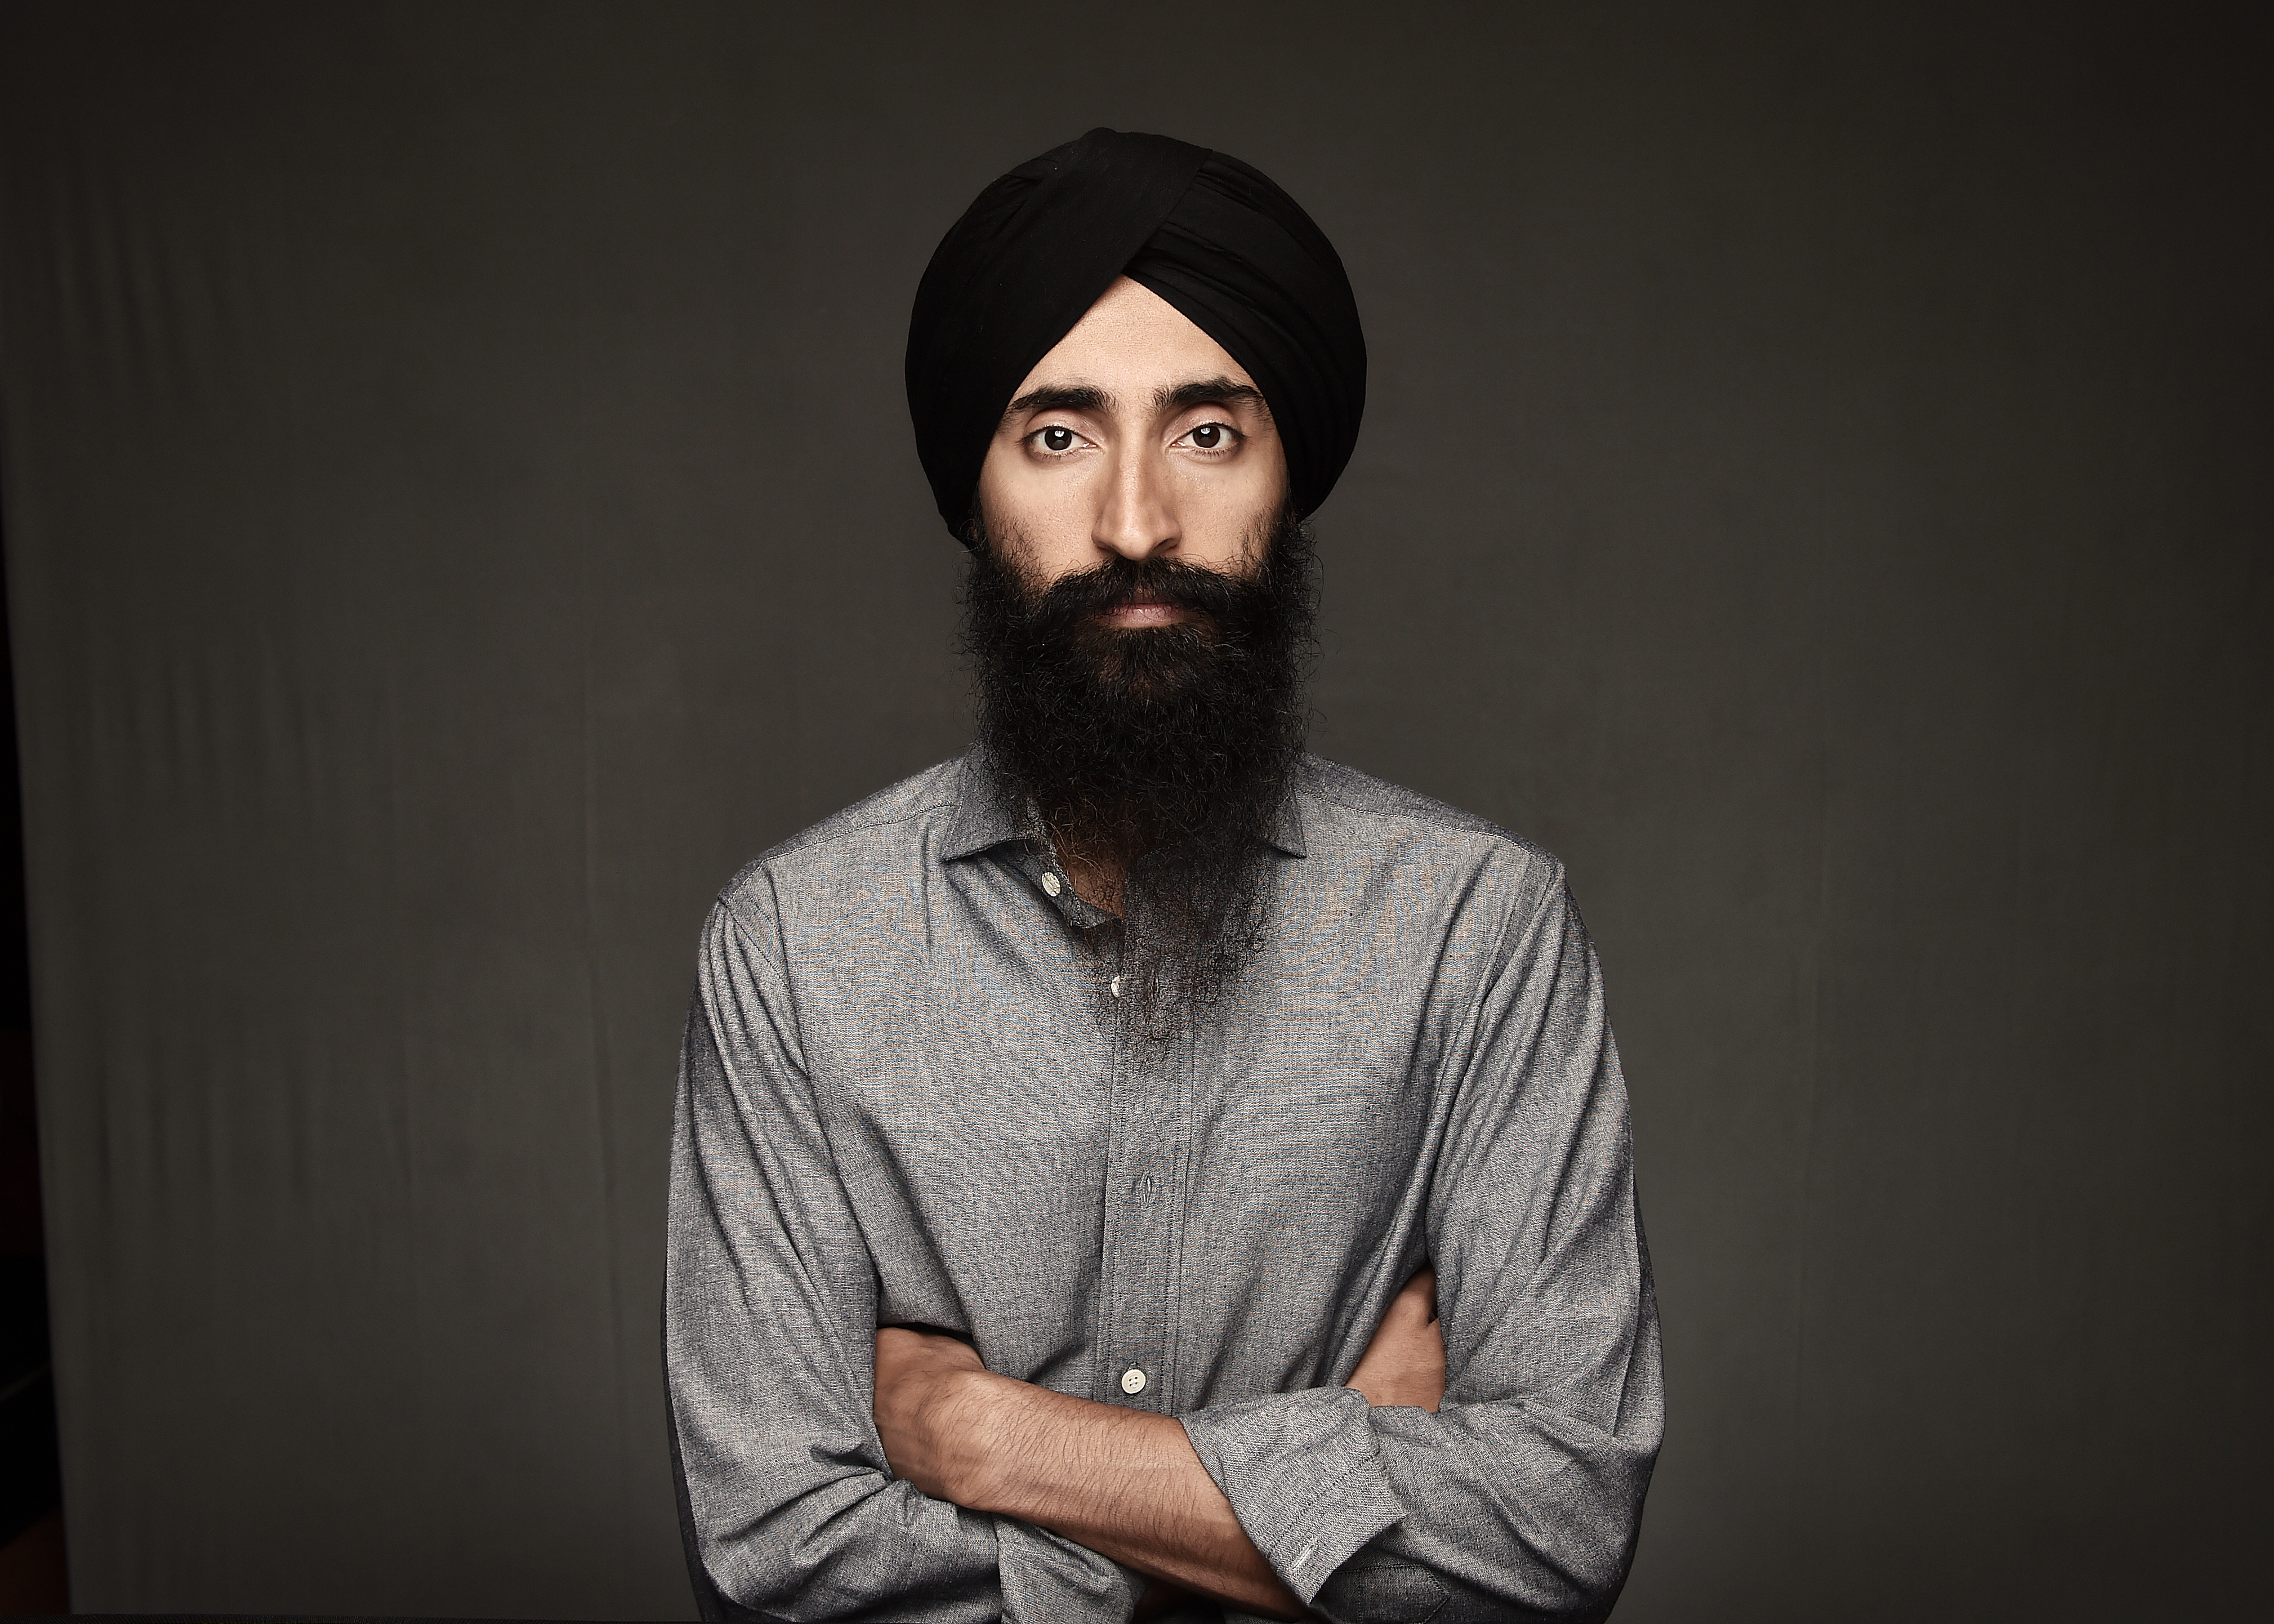 Actor Waris Ahluwalia poses during a portrait session on day seven of the 12th annual Dubai International Film Festival held at the Madinat Jumeriah Complex on Dec. 15, 2015 in Dubai, United Arab Emirates.